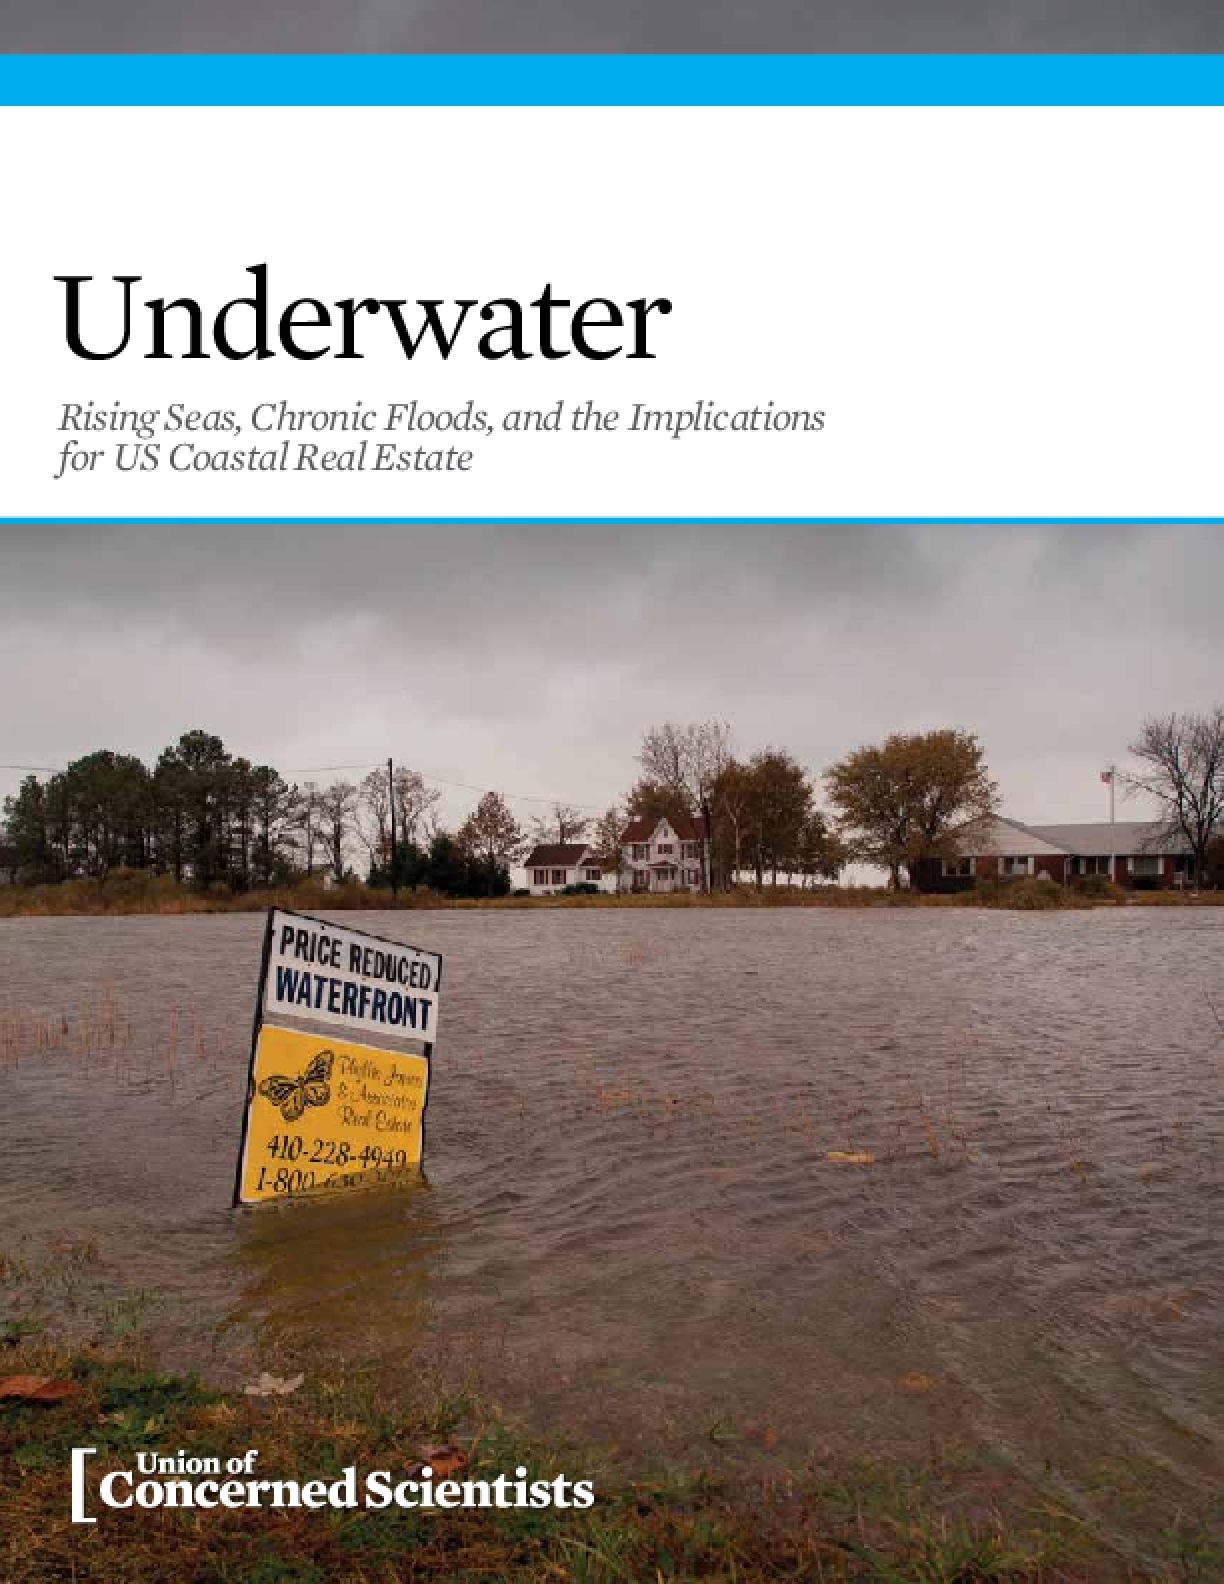 Underwater: Rising Seas, Chronic Floods, and the Implications for US Coastal Real Estate